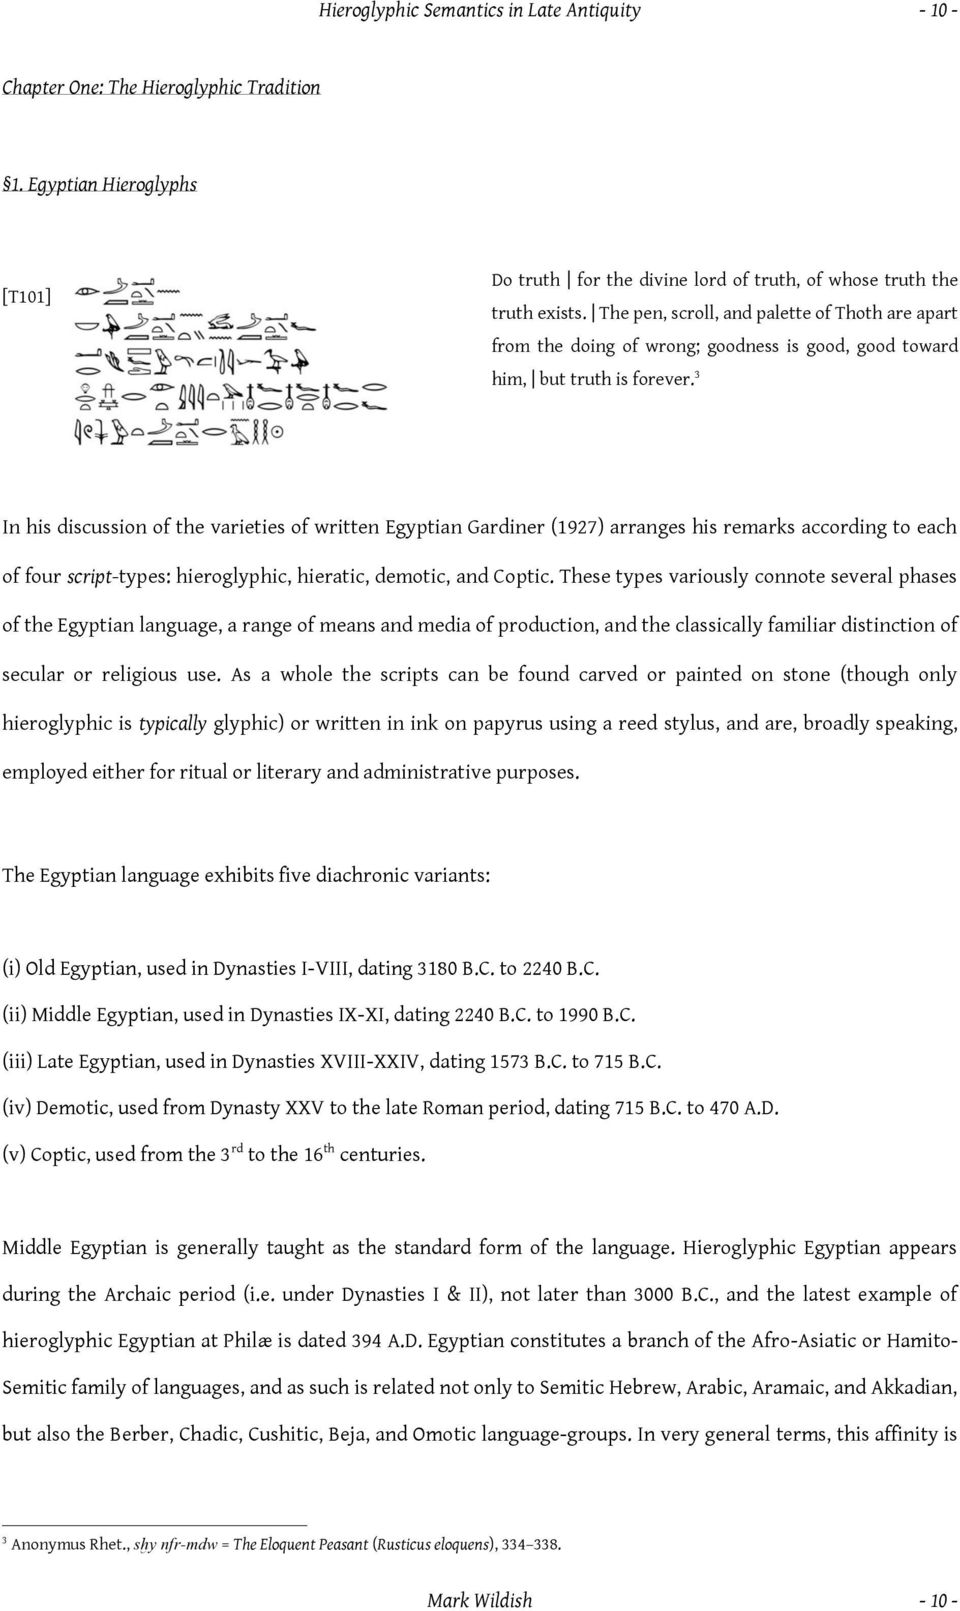 3 In his discussion of the varieties of written Egyptian Gardiner (1927) arranges his remarks according to each of four script-types: hieroglyphic, hieratic, demotic, and Coptic.